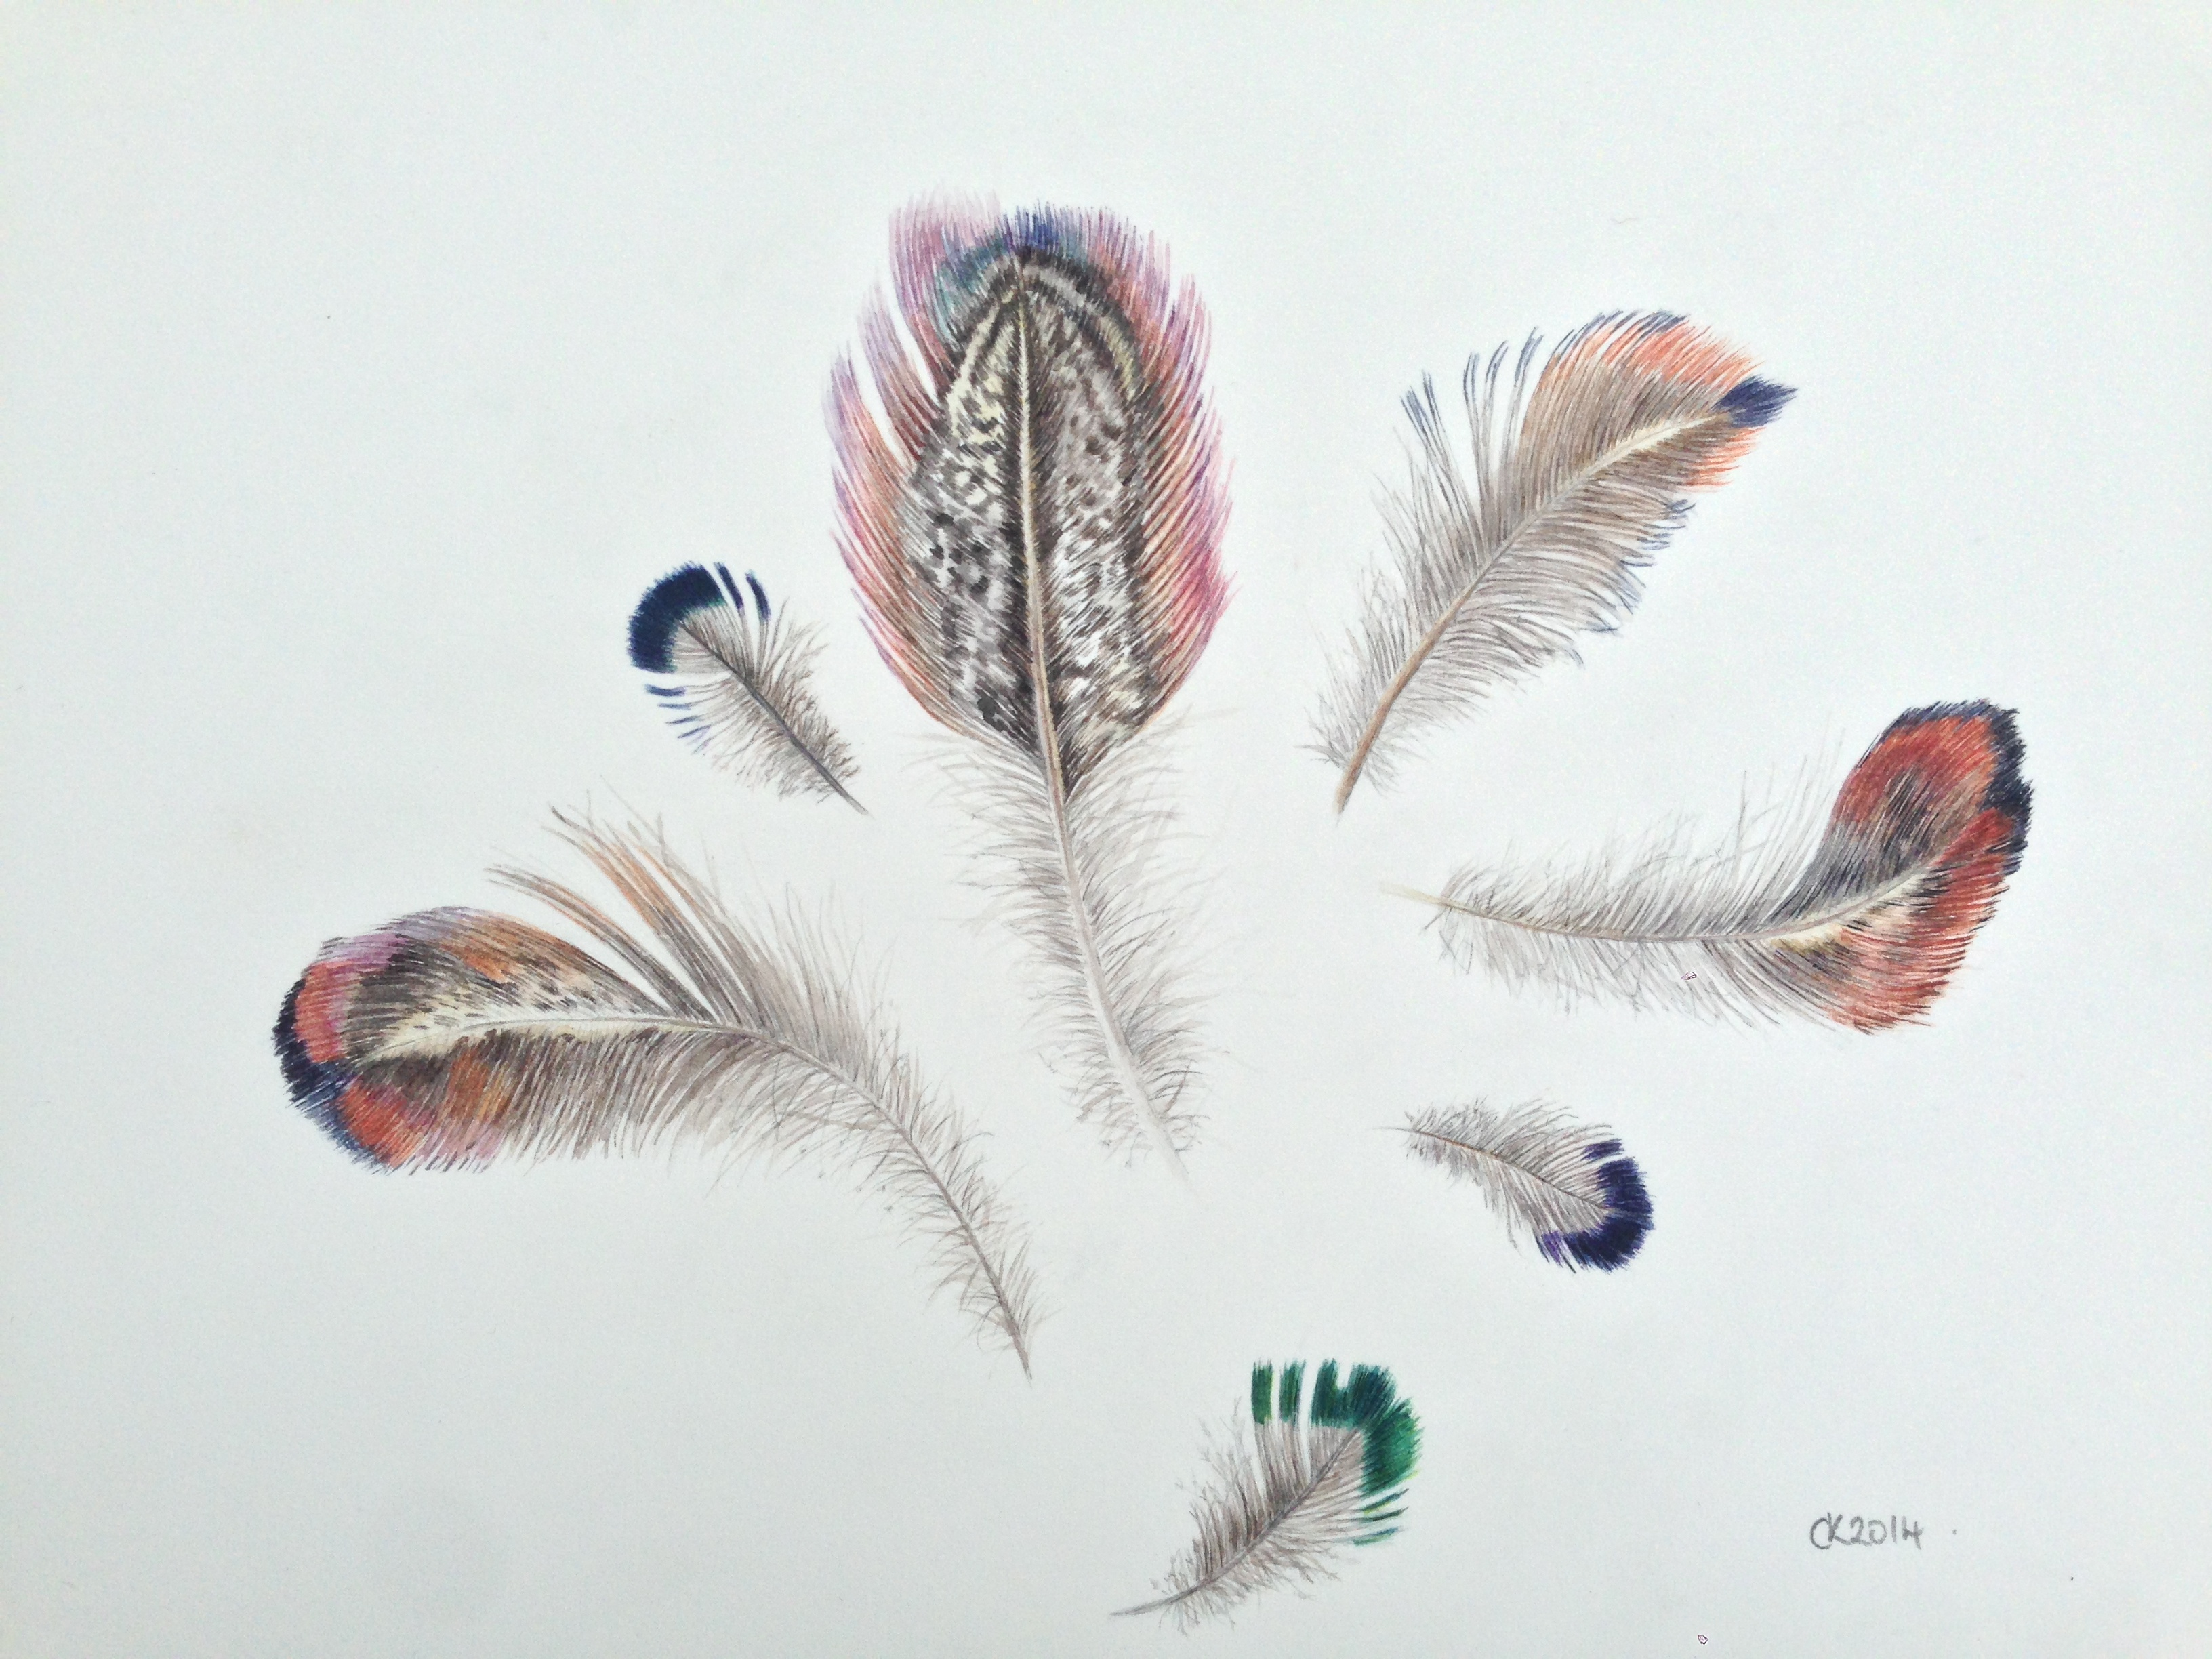 Lot 34 - Candida Kelly Pheasant Feathers signed with initials and dated 2014; inscribed, inscribed with